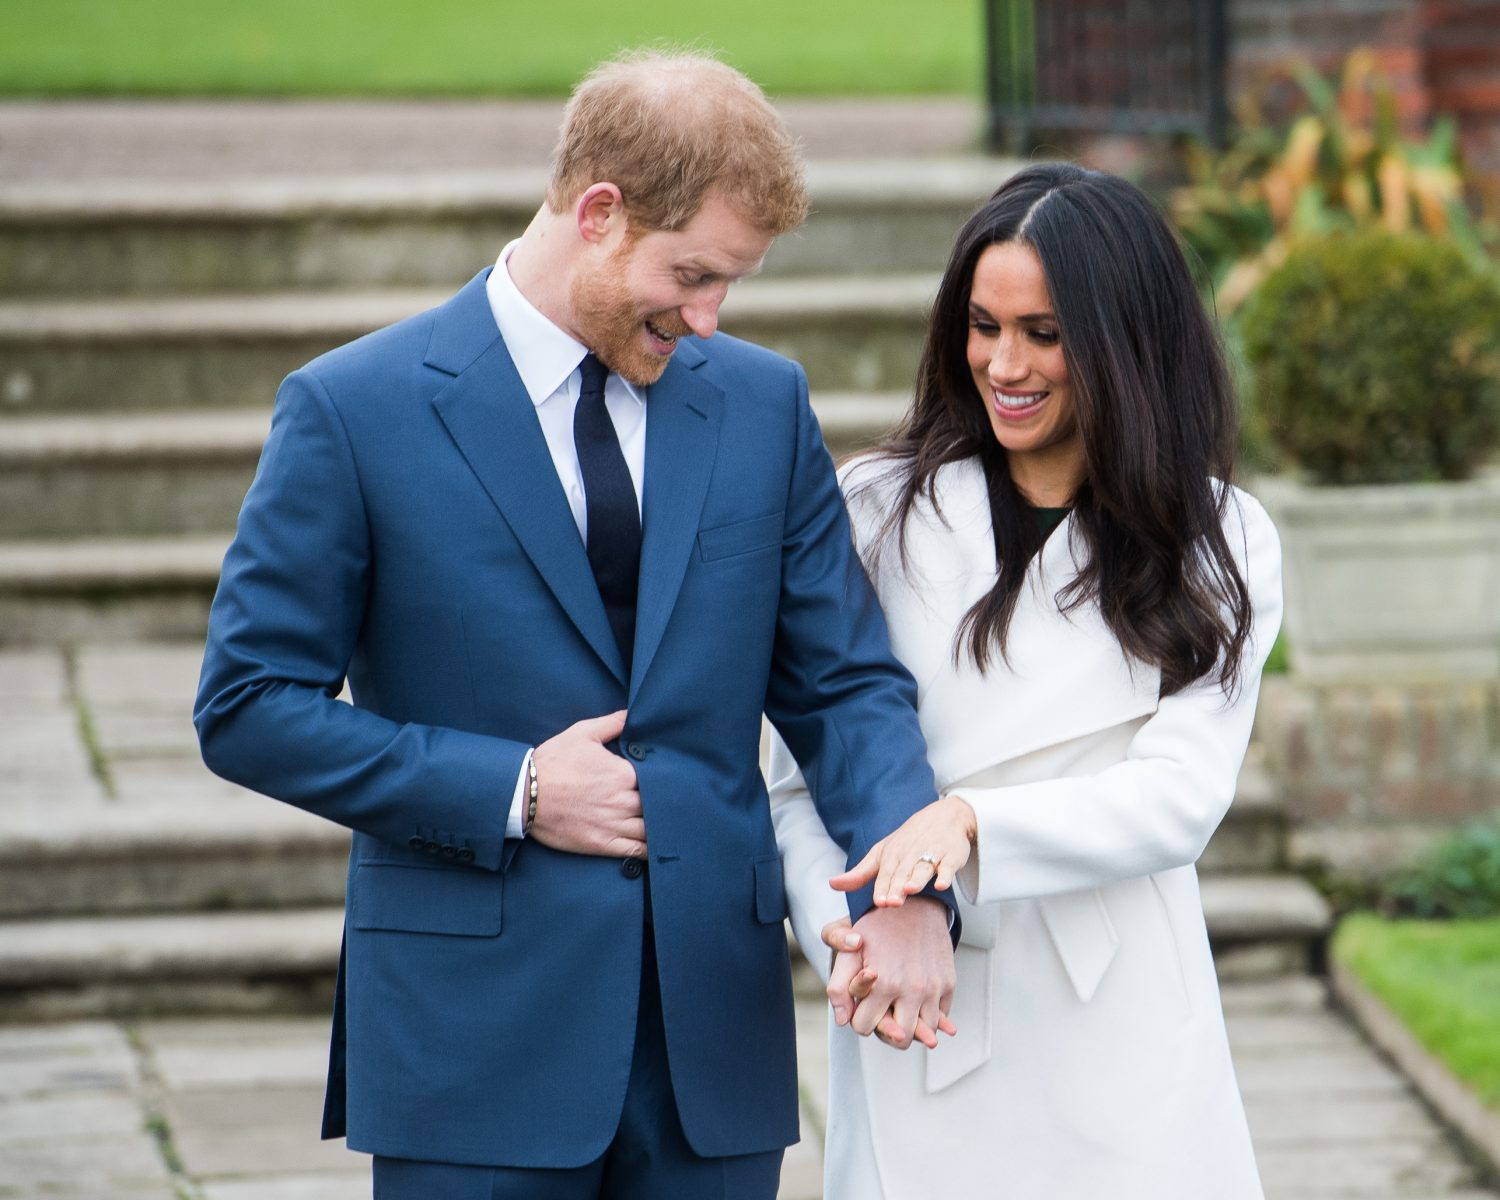 Prince harry Meghan Markle photo call engagement